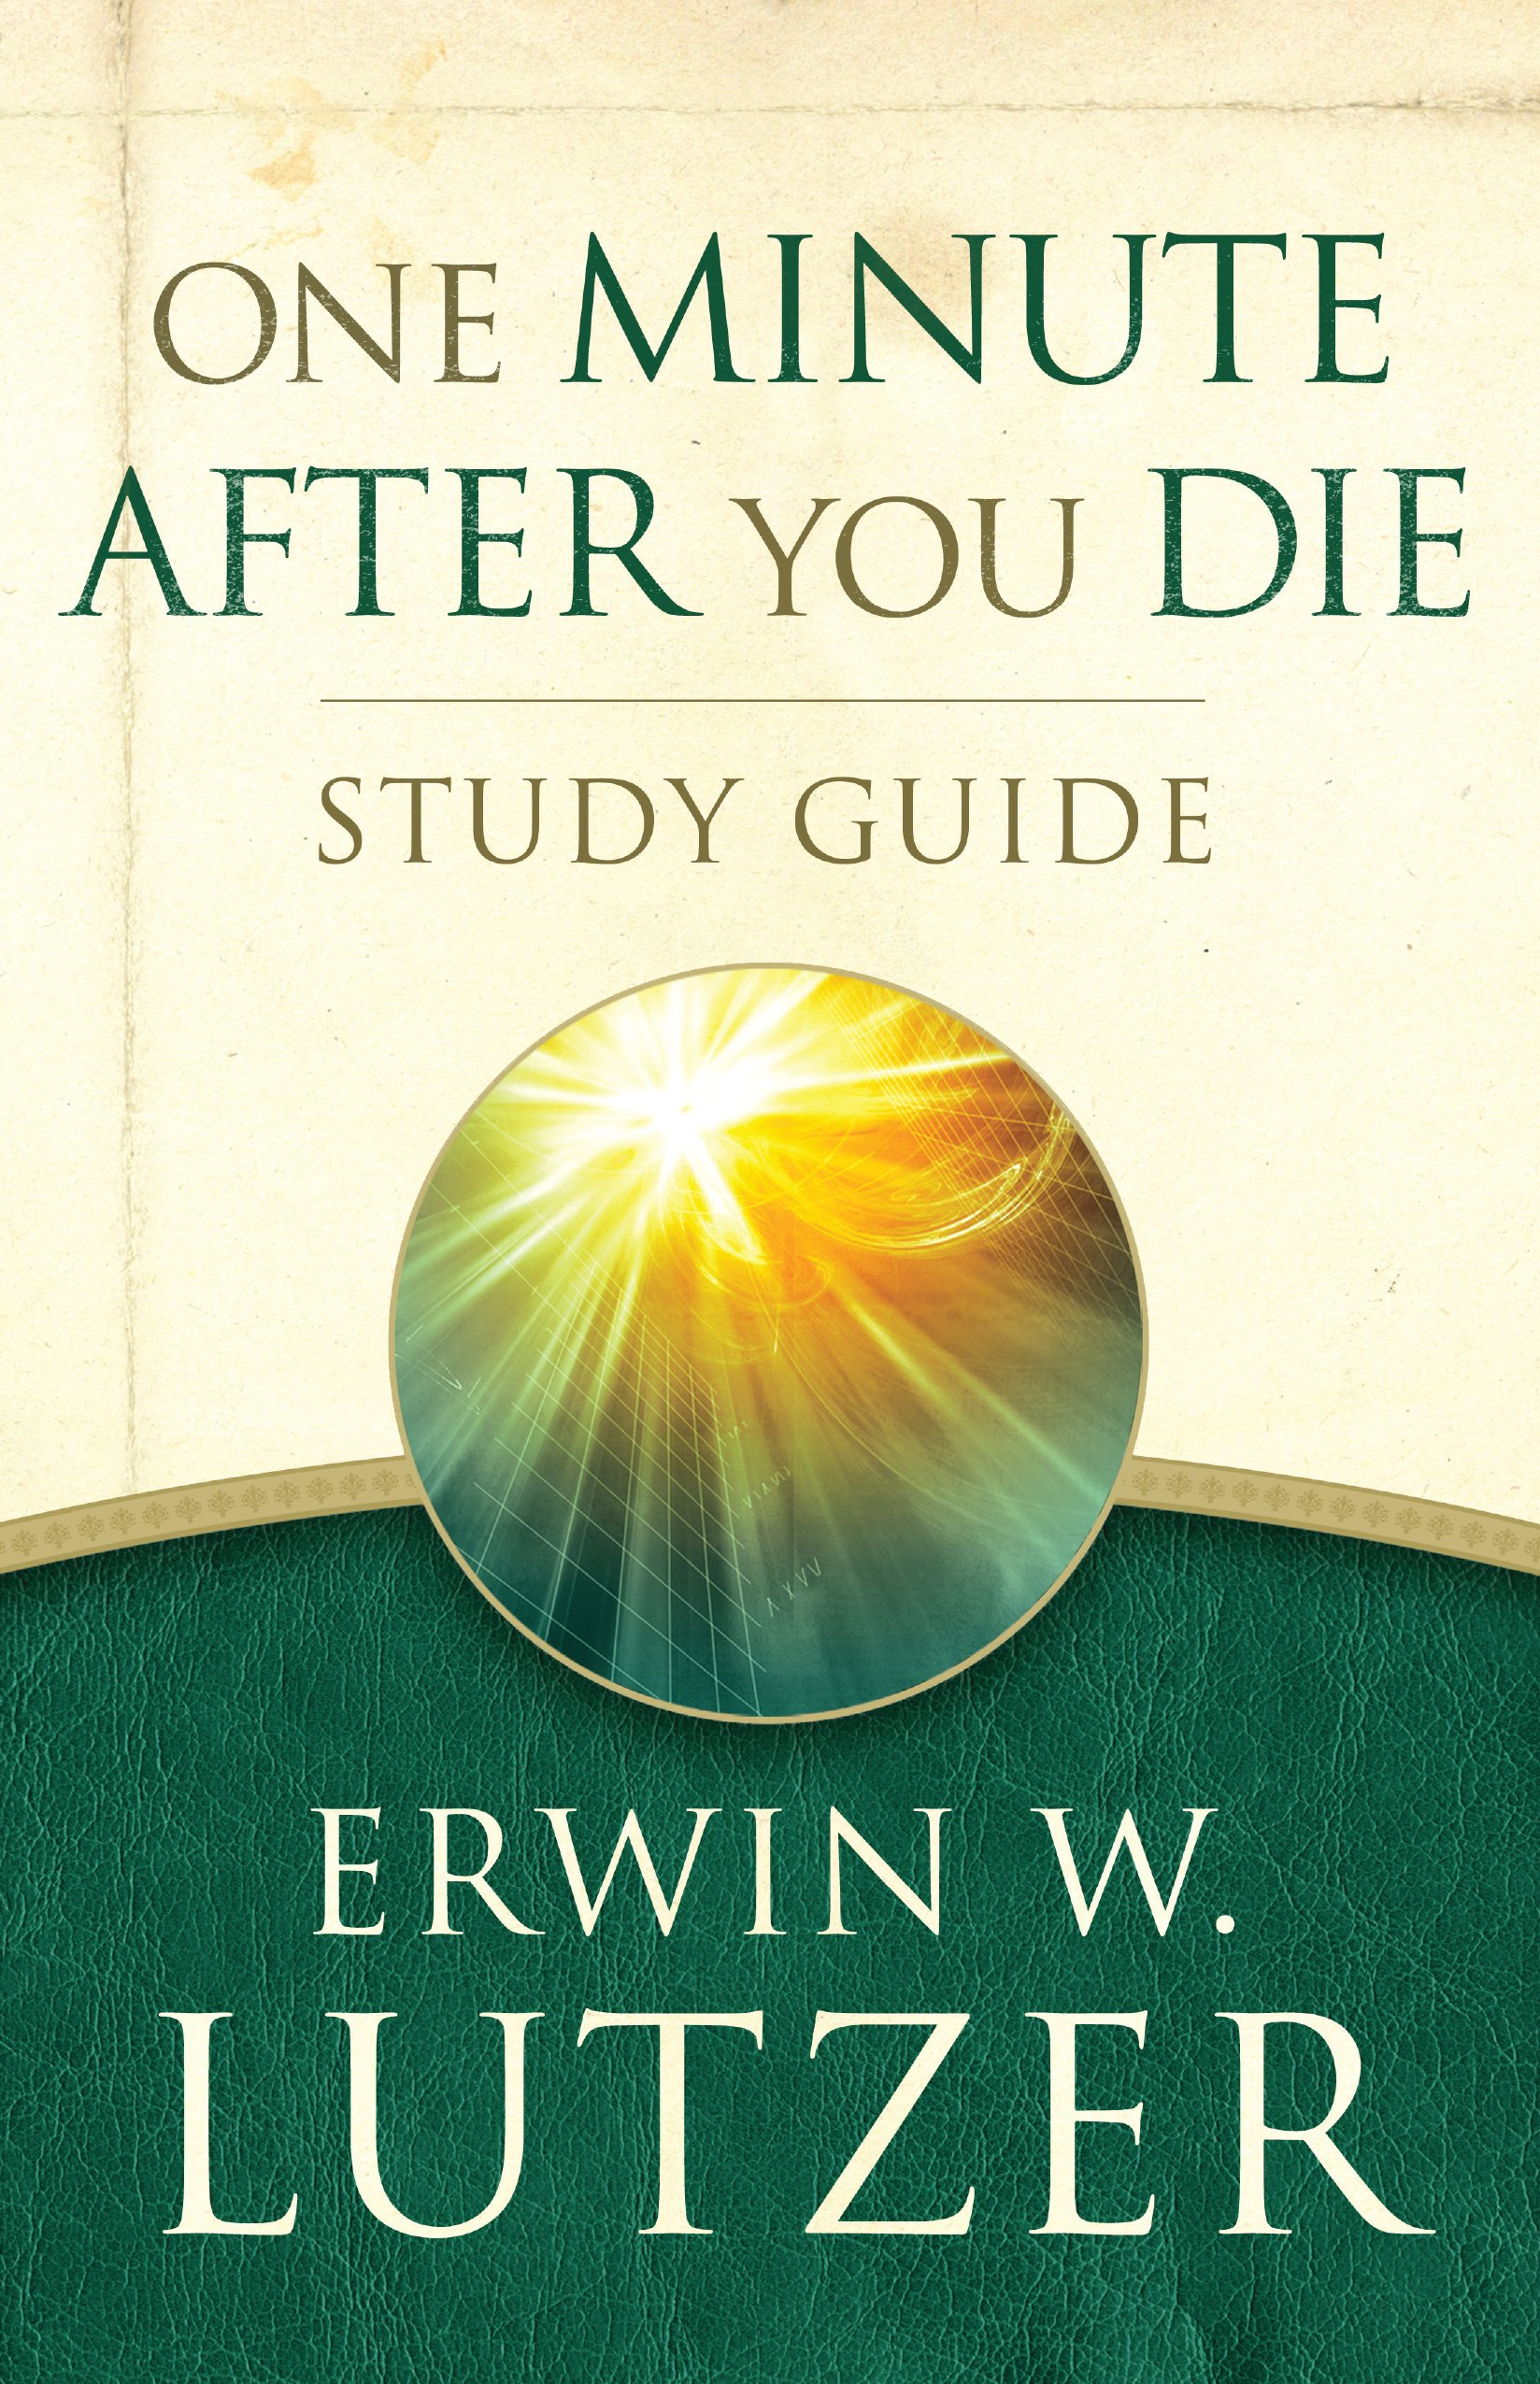 One Minute After You Die STUDY GUIDE pdf